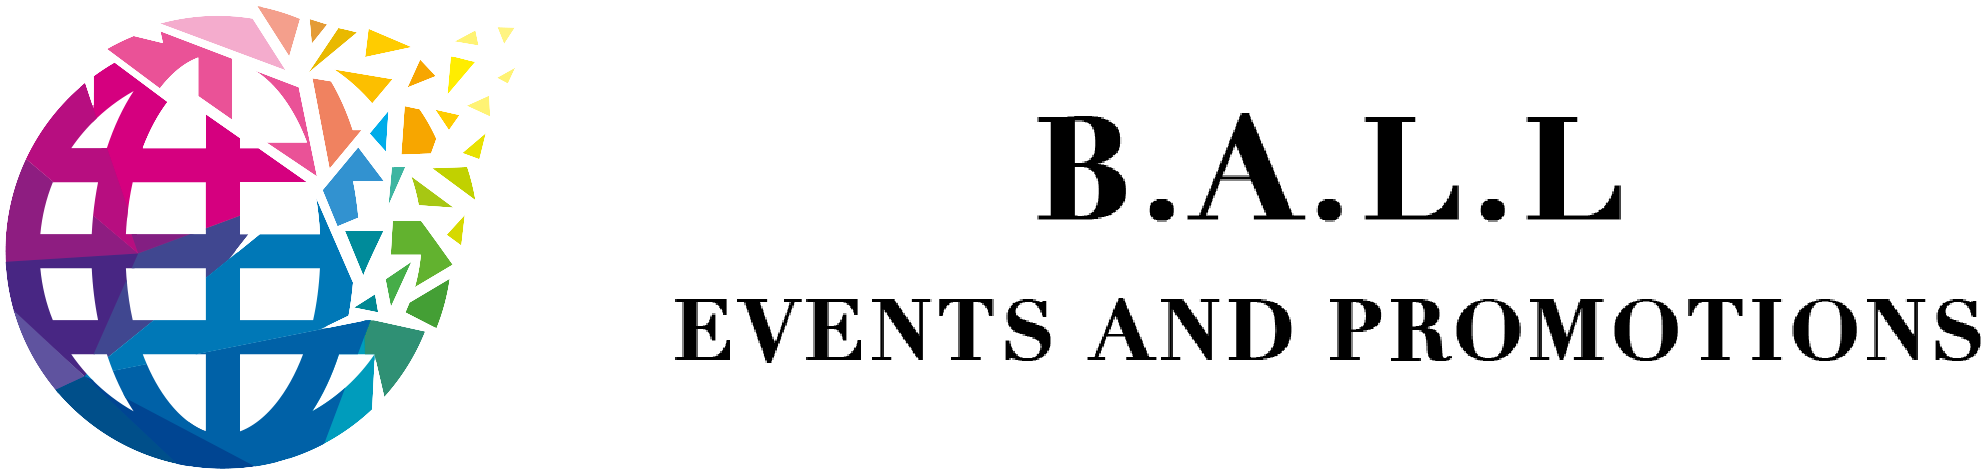 B.A.L.L Events & Promotions